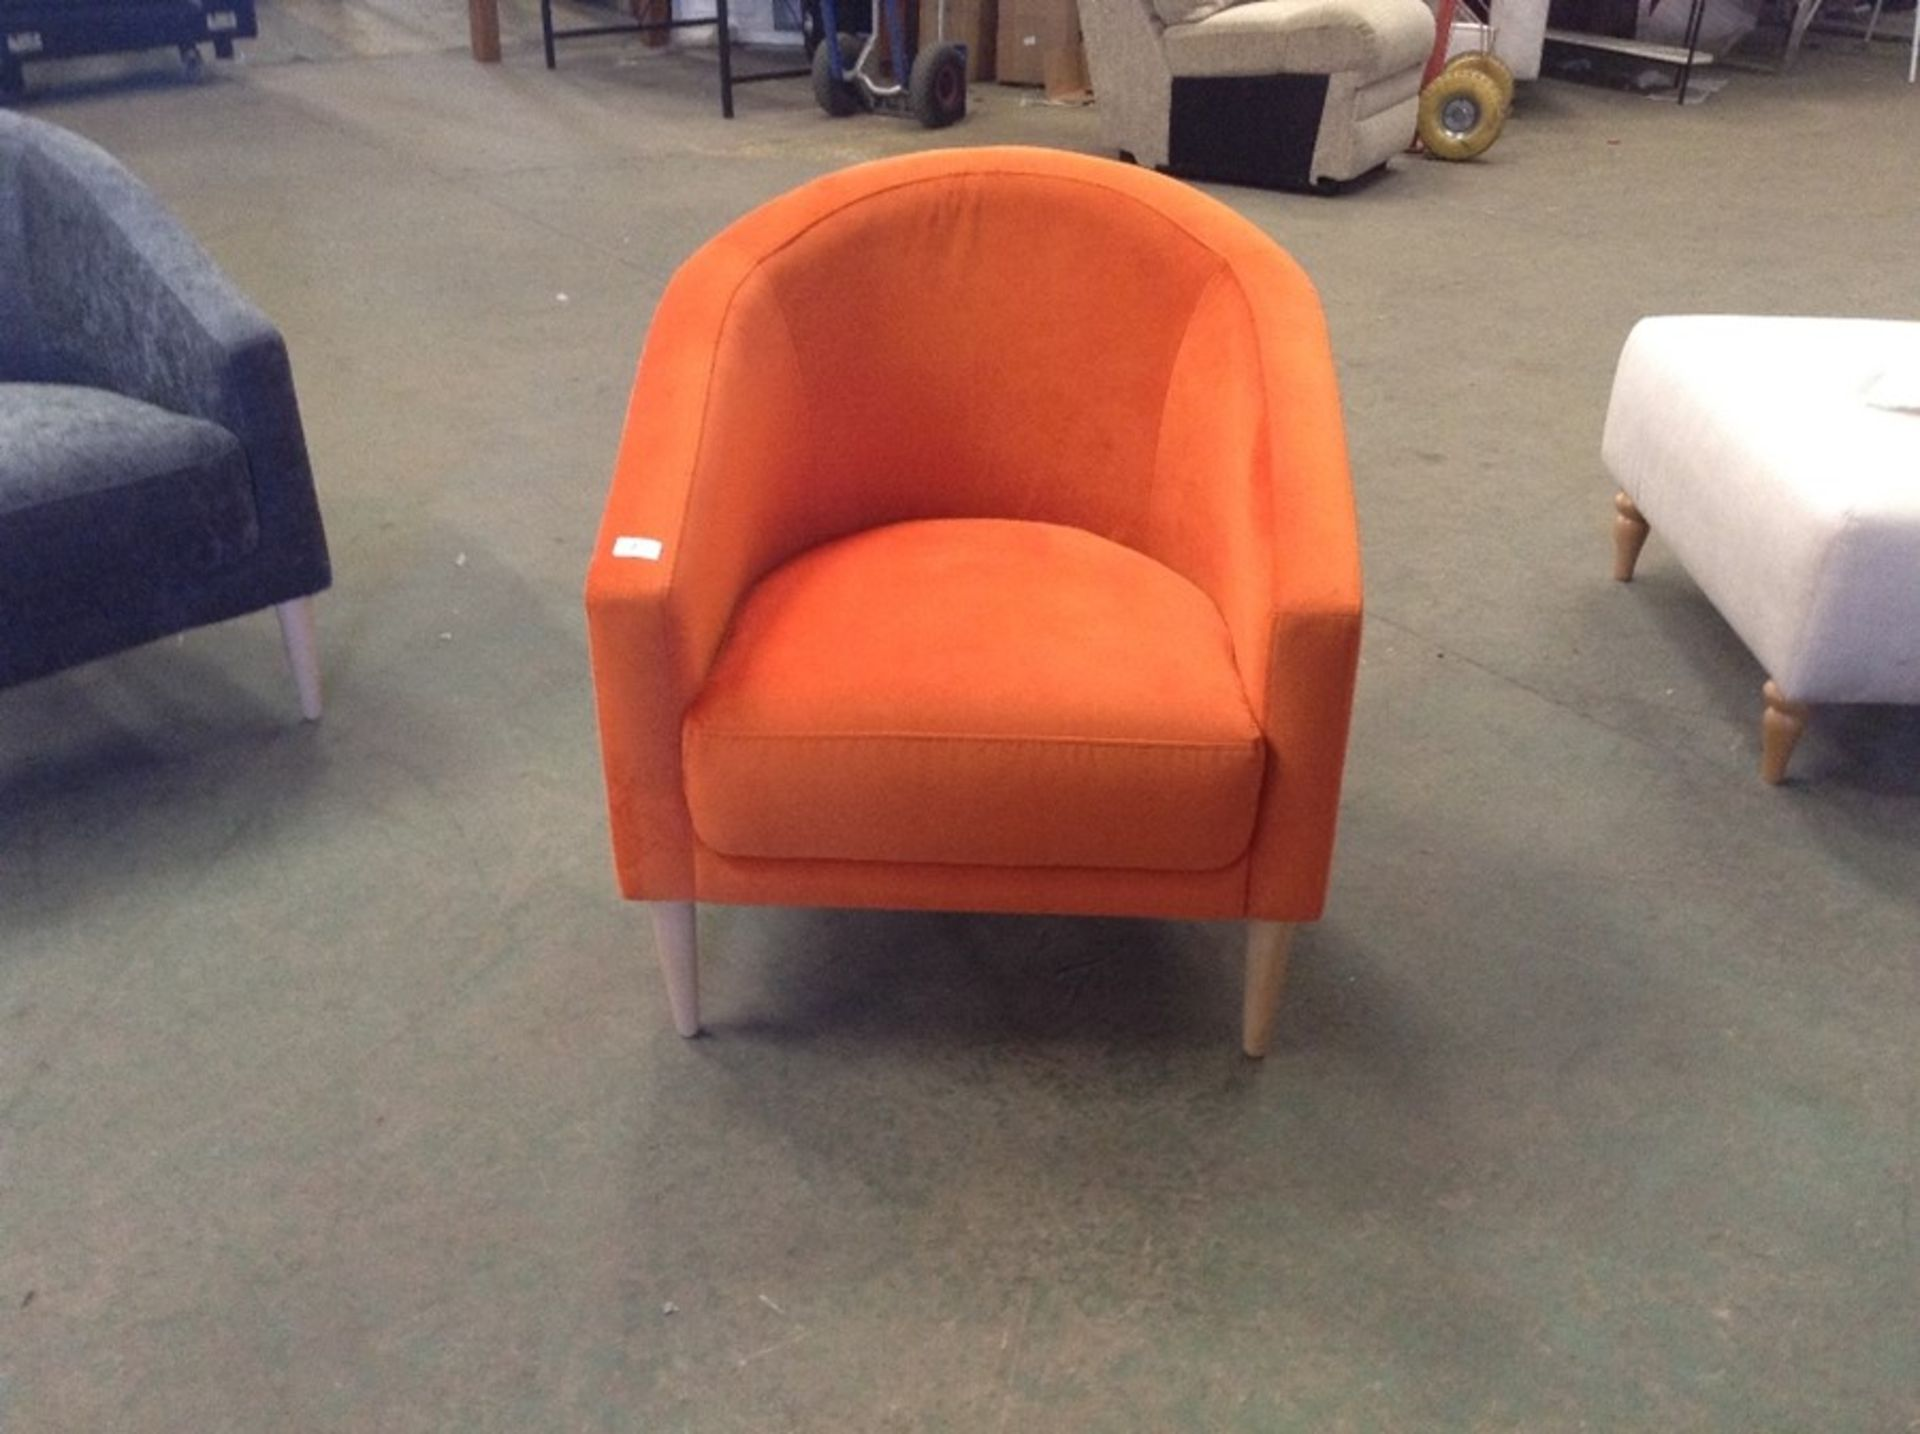 SHELL HARRIET ORANGE CHAIR (SFL1245 -S523601)